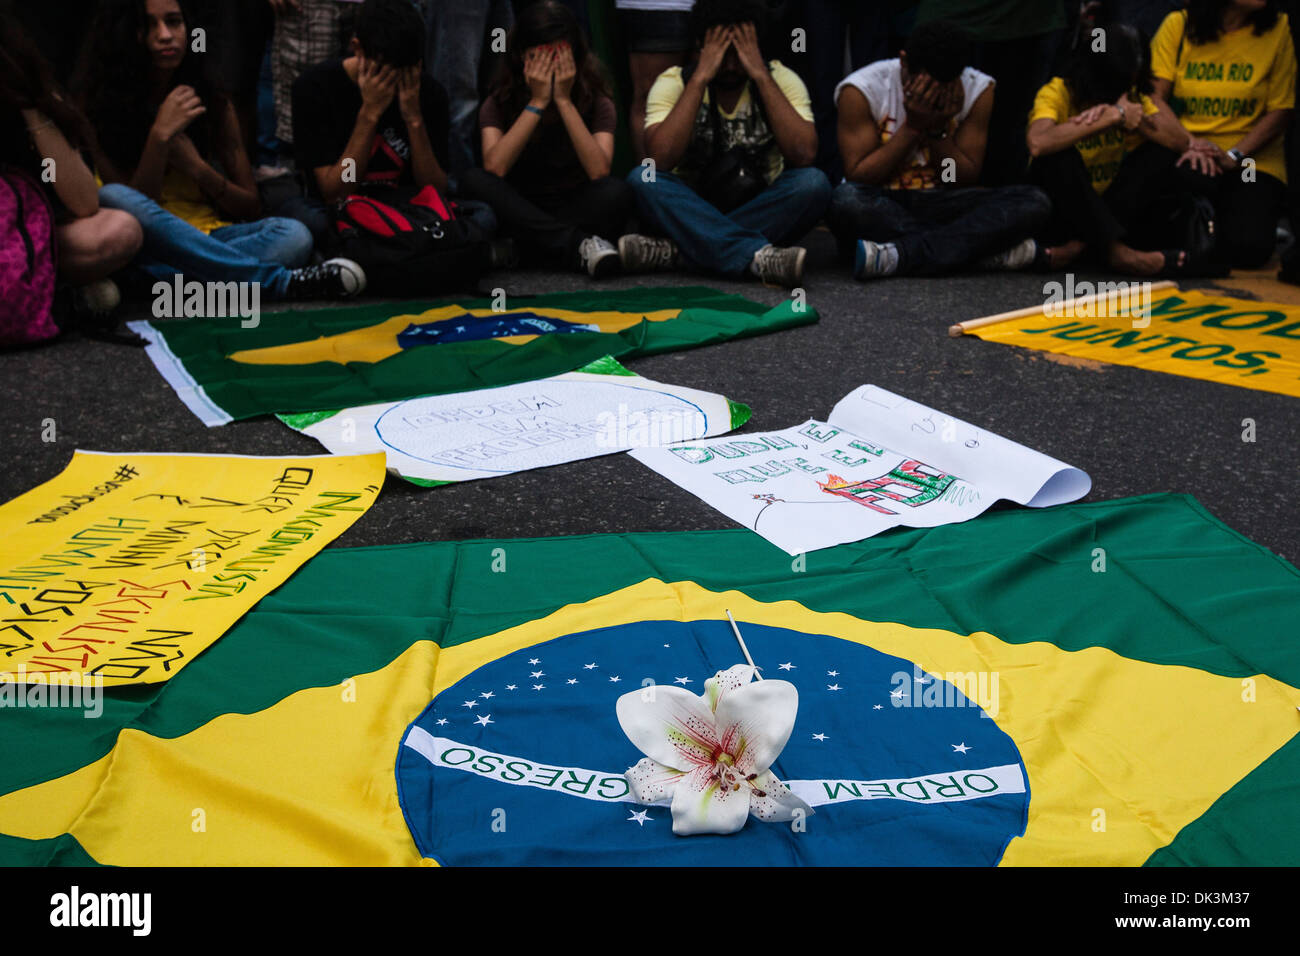 Brazil 2013 protests Young people cover their faces in shame for corruption in Brazilian Government, Brazil flag and flower - Stock Image